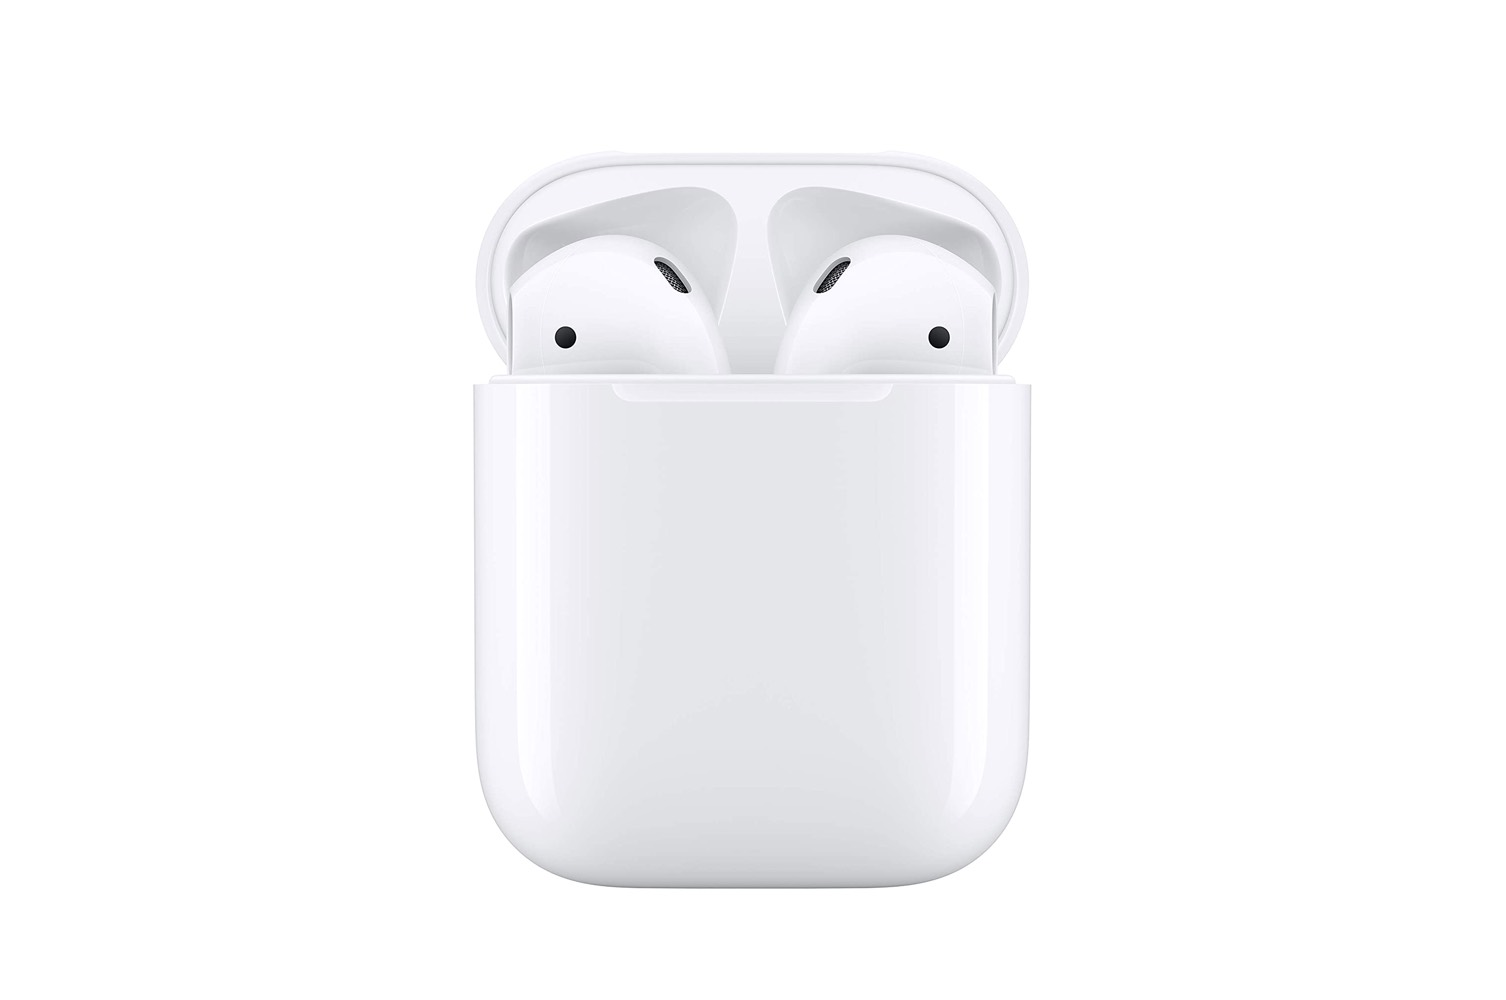 Prime Day 2021 Apple AirPods Deals! 1